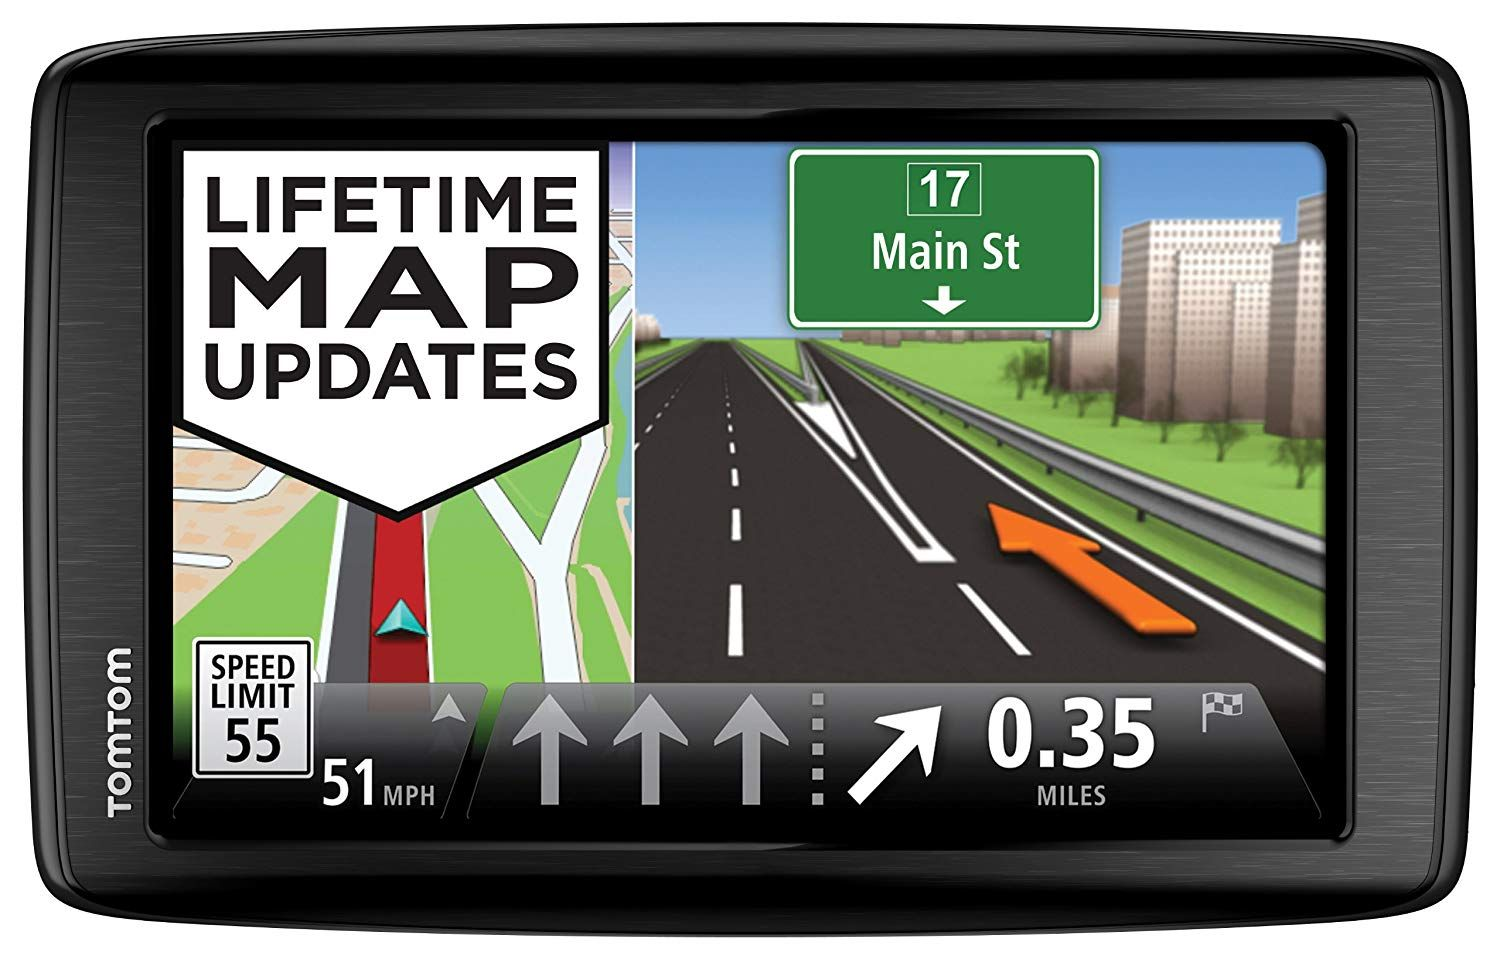 TomTom VIA 1605M GPS Navigator with Lifetime Maps (Discontinued by